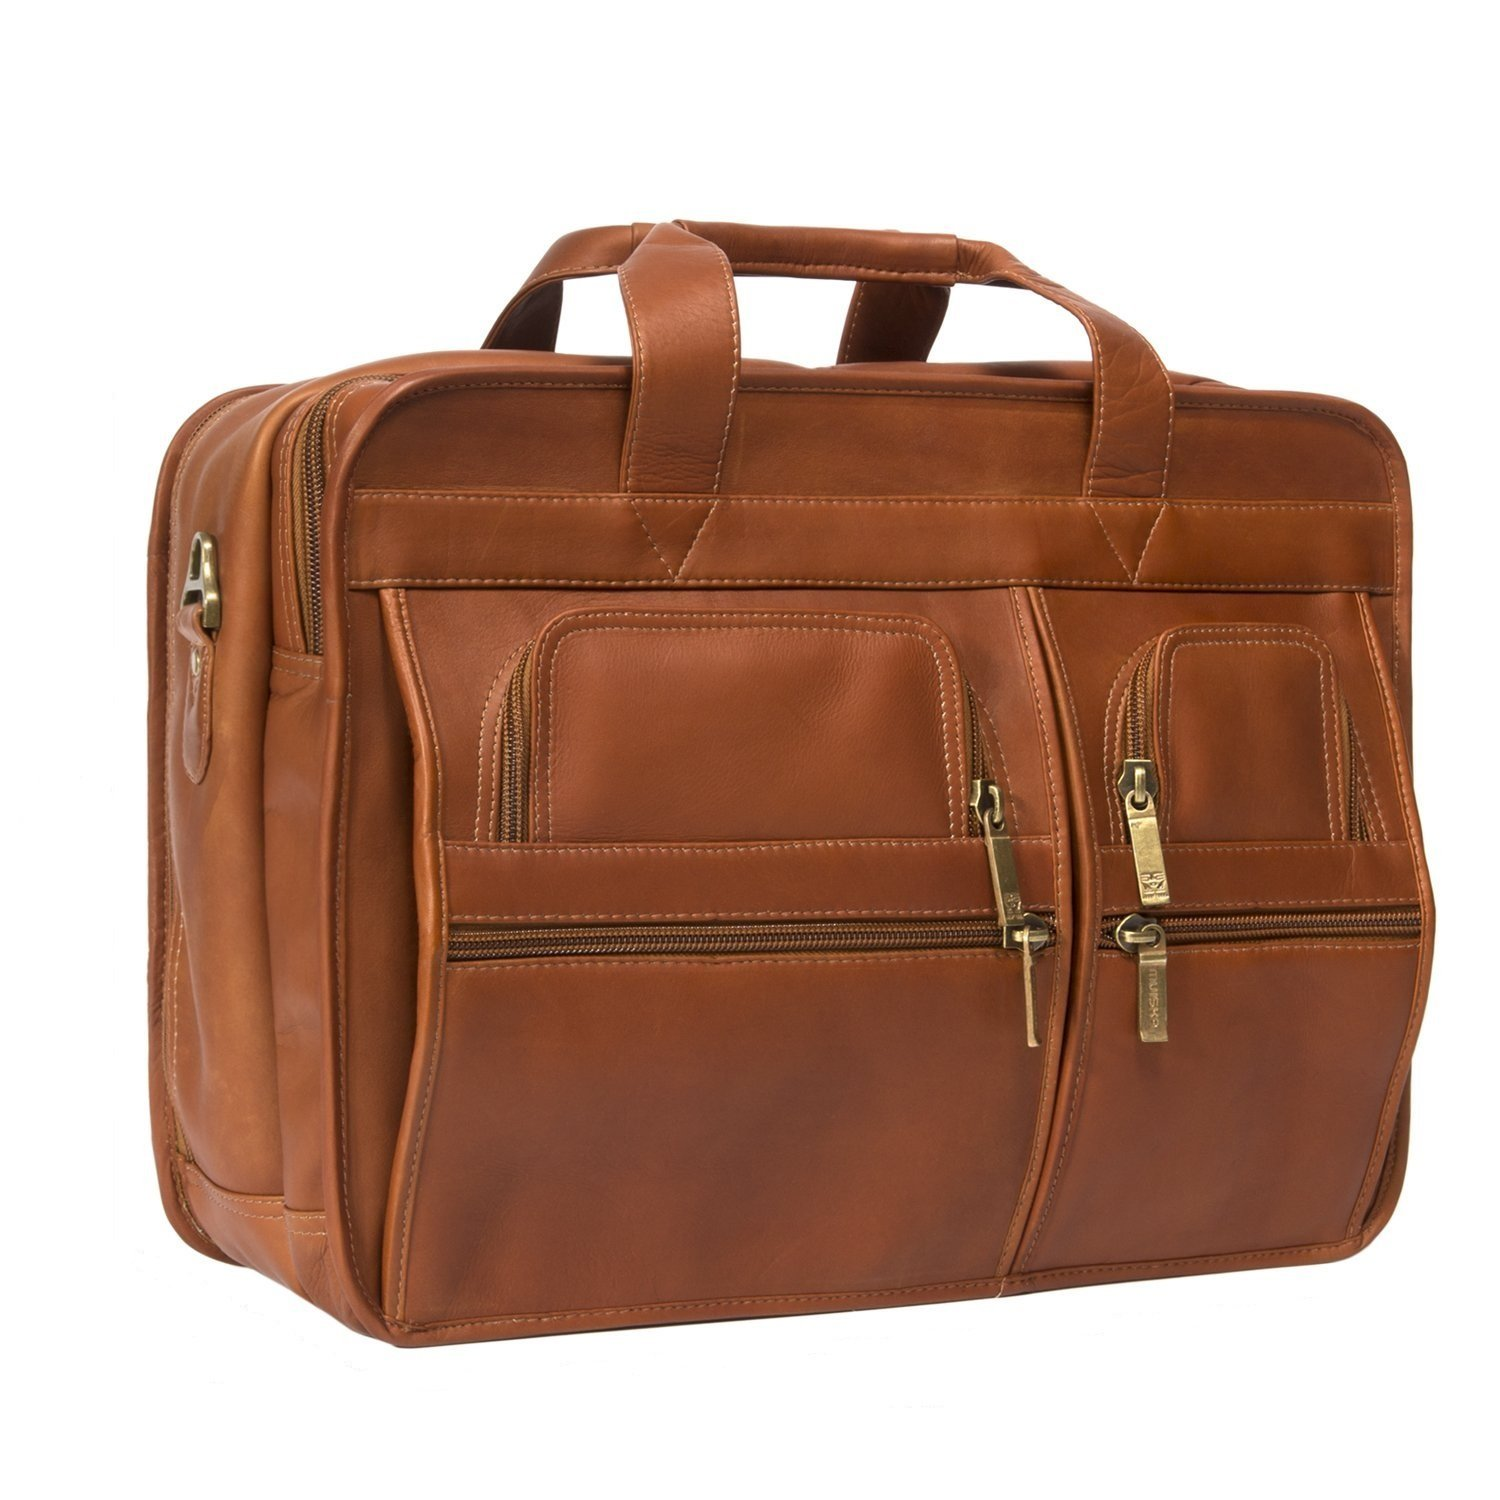 86bb1df1b5a3 60%OFF Muiska 17 Inch Double Compartment Leather Laptop Briefcase ...